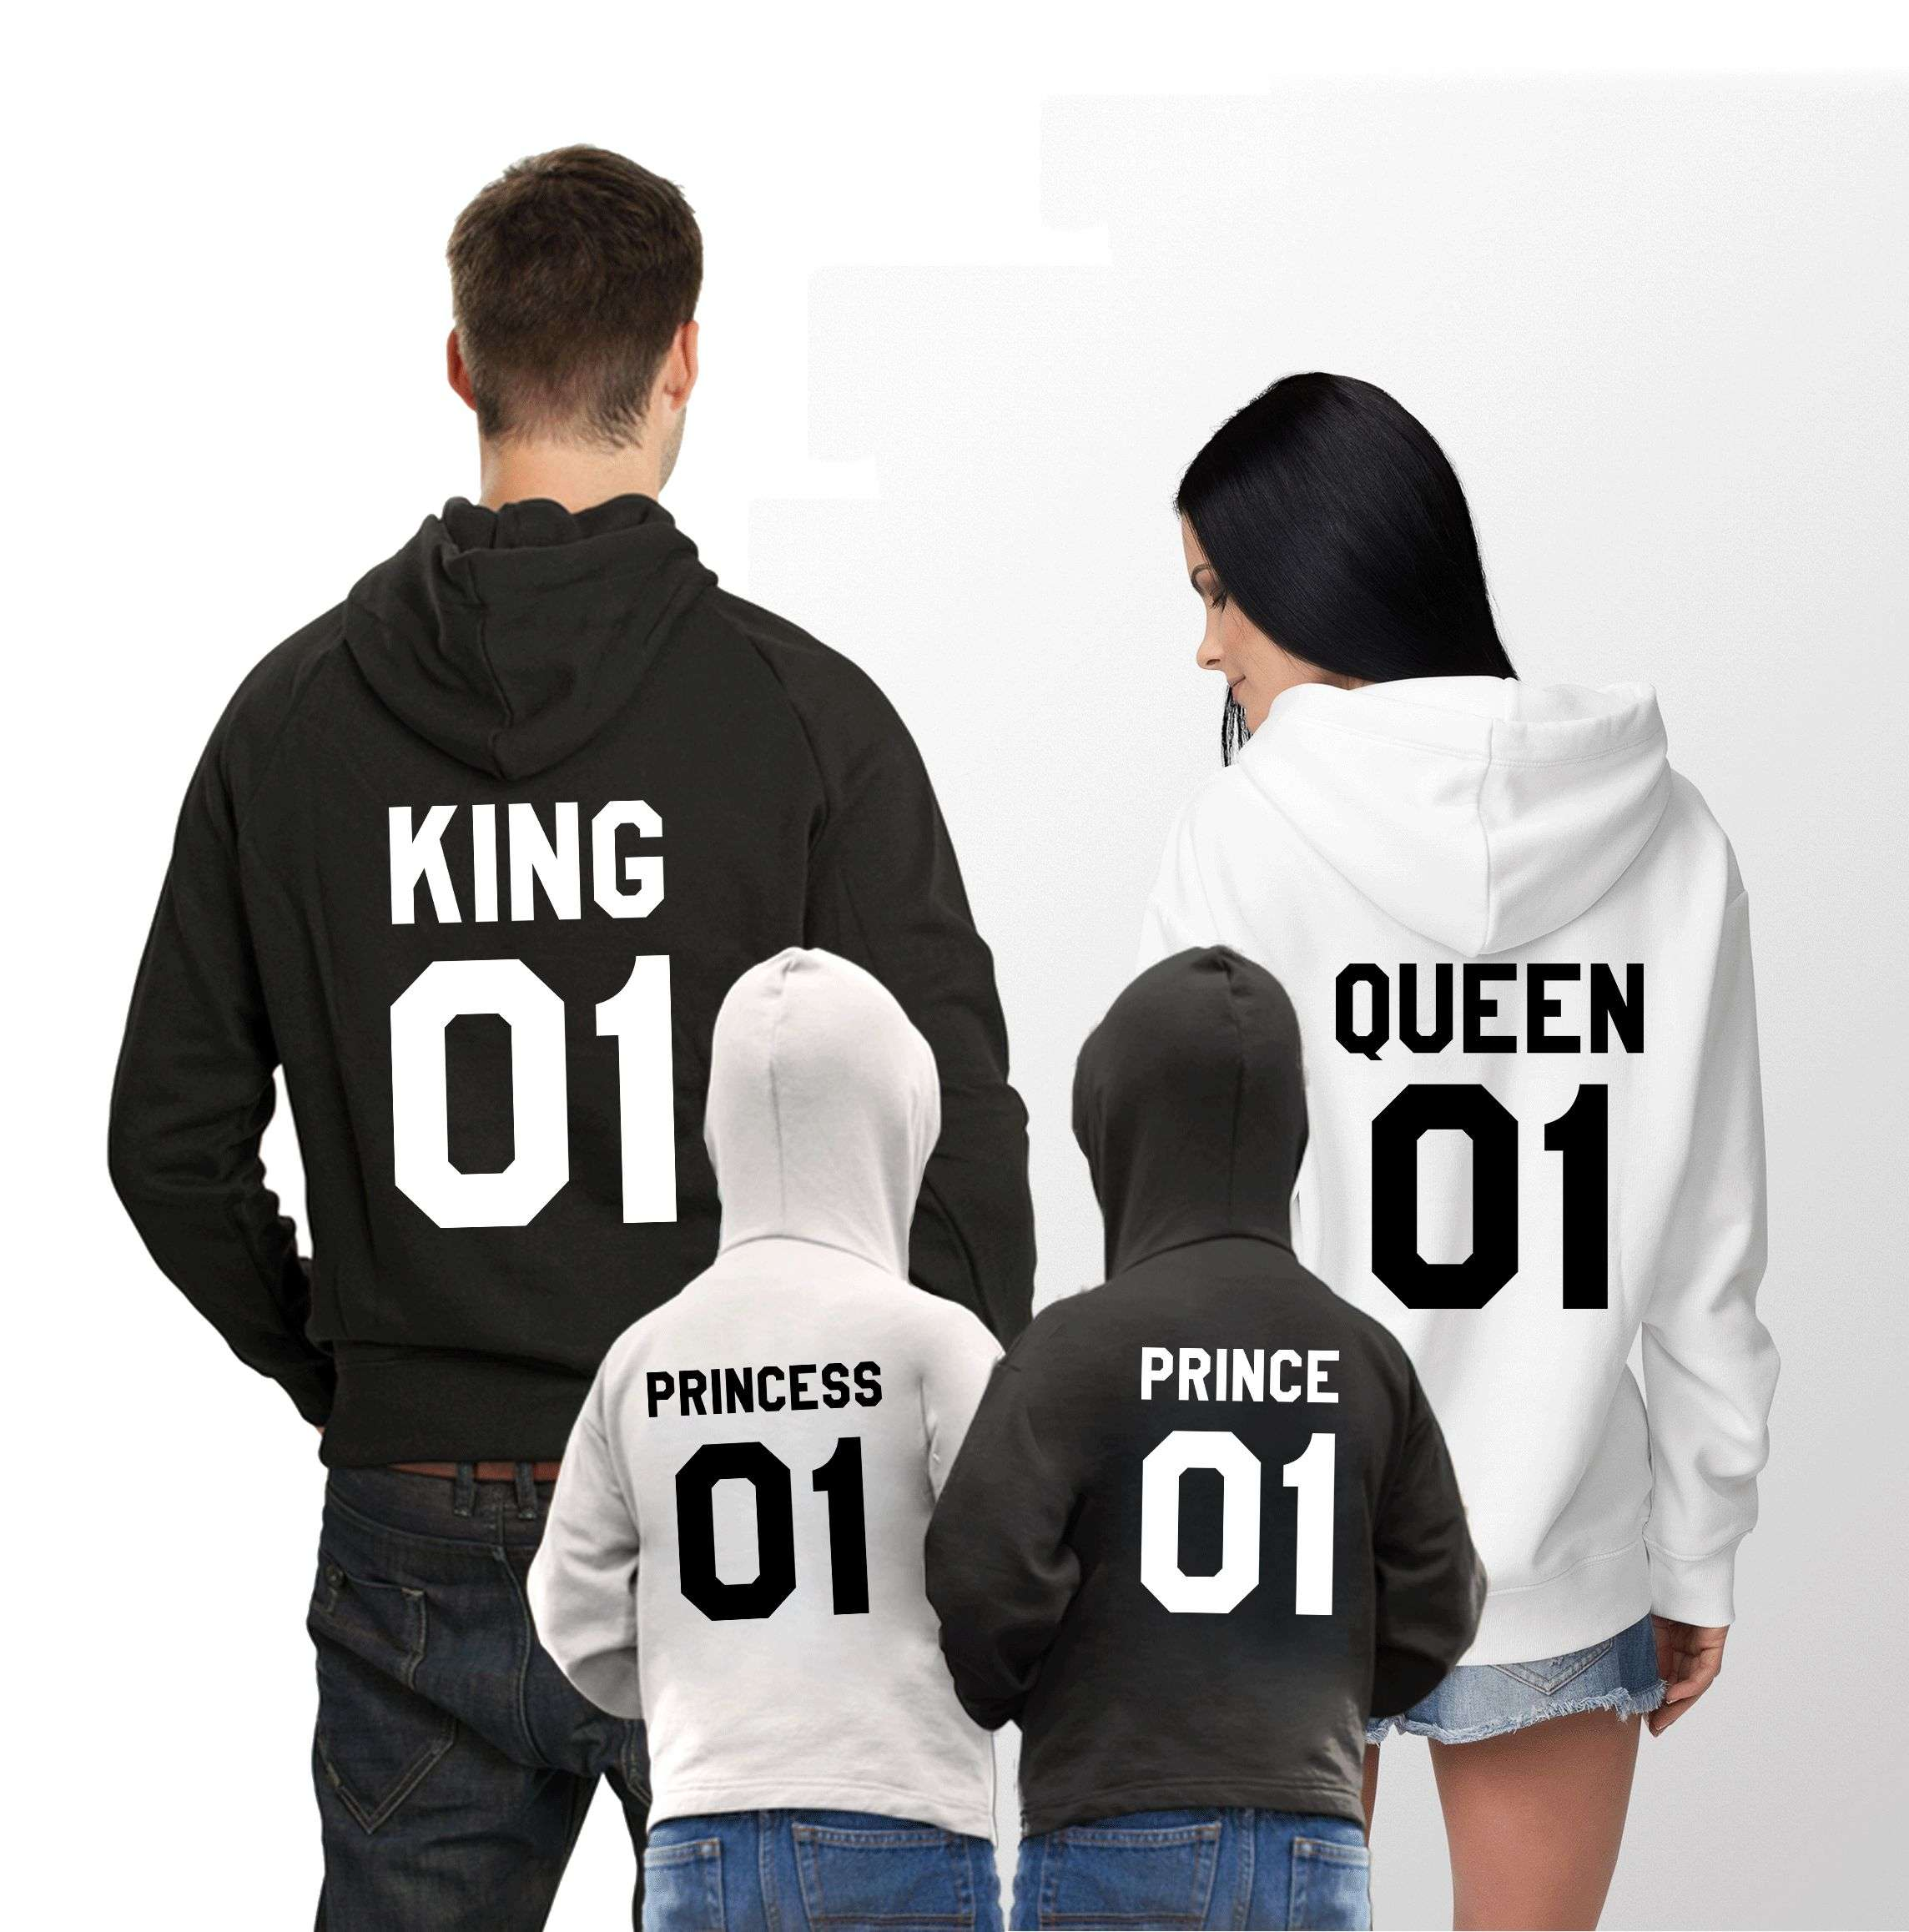 2d9830a3e7 King Queen Prince Princess Hoodies, Matching Family Hoodies